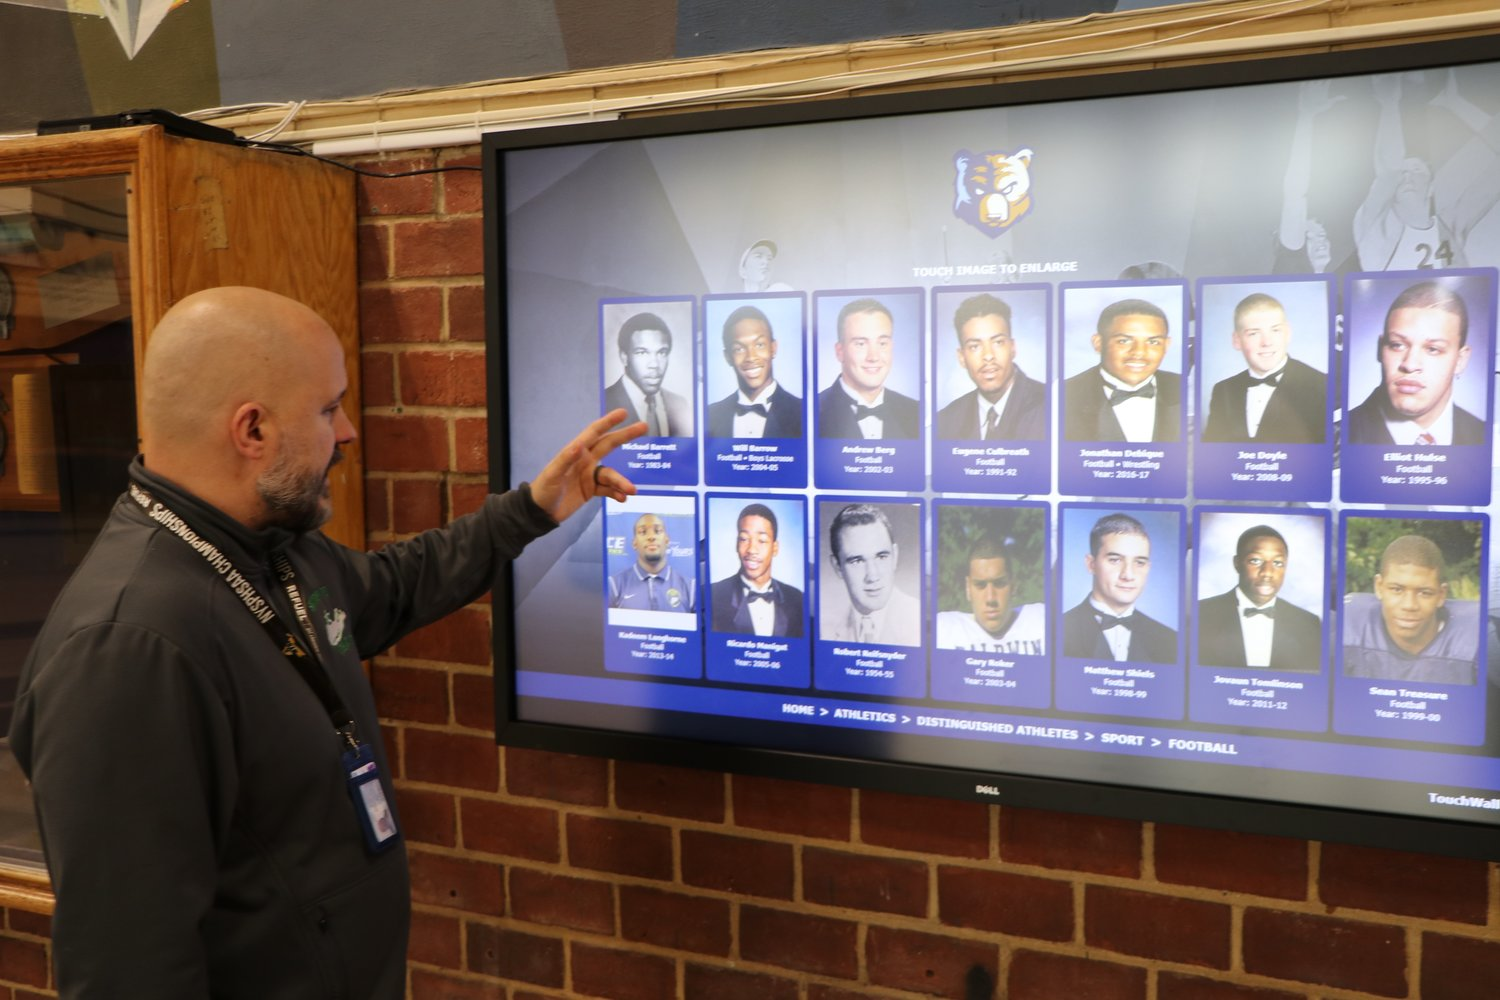 Ed Ramirez, Baldwin's athletics director, shows off the screen with highlights of past Baldwin sports stars